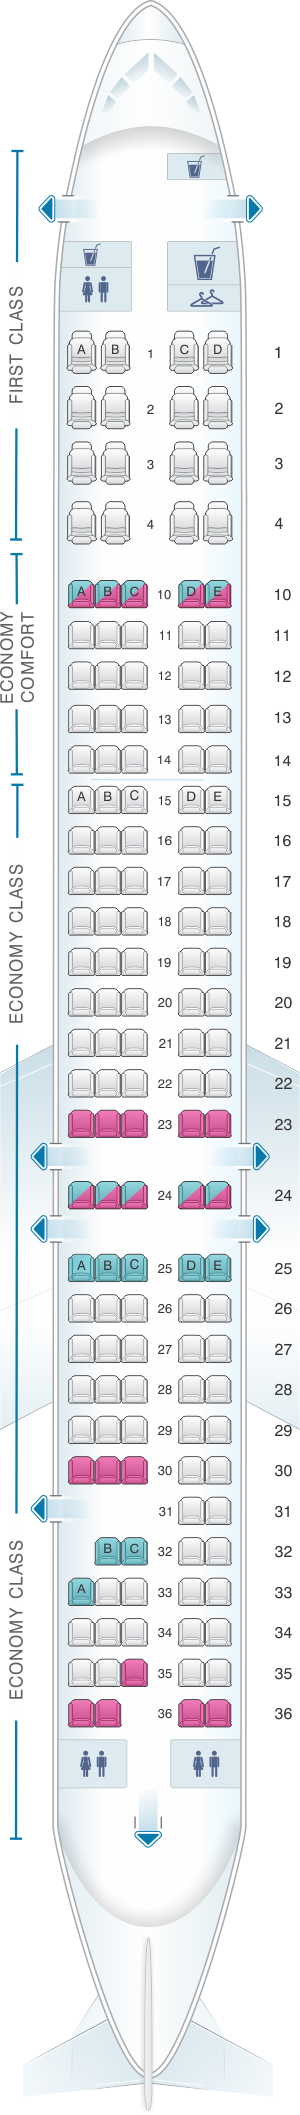 Seat Map McDonnell Douglas MD 88 | Delta Air Lines ... China Southern Seat Map on a380 emirates map, china economy-class airline seat configuration, china southern airline, china eastern airlines seat map, china southern hotels, china southern route map, china airline a330-200 seat map for east, china southern business class, china southern frequent flyer, china map airplane, air china seat map,